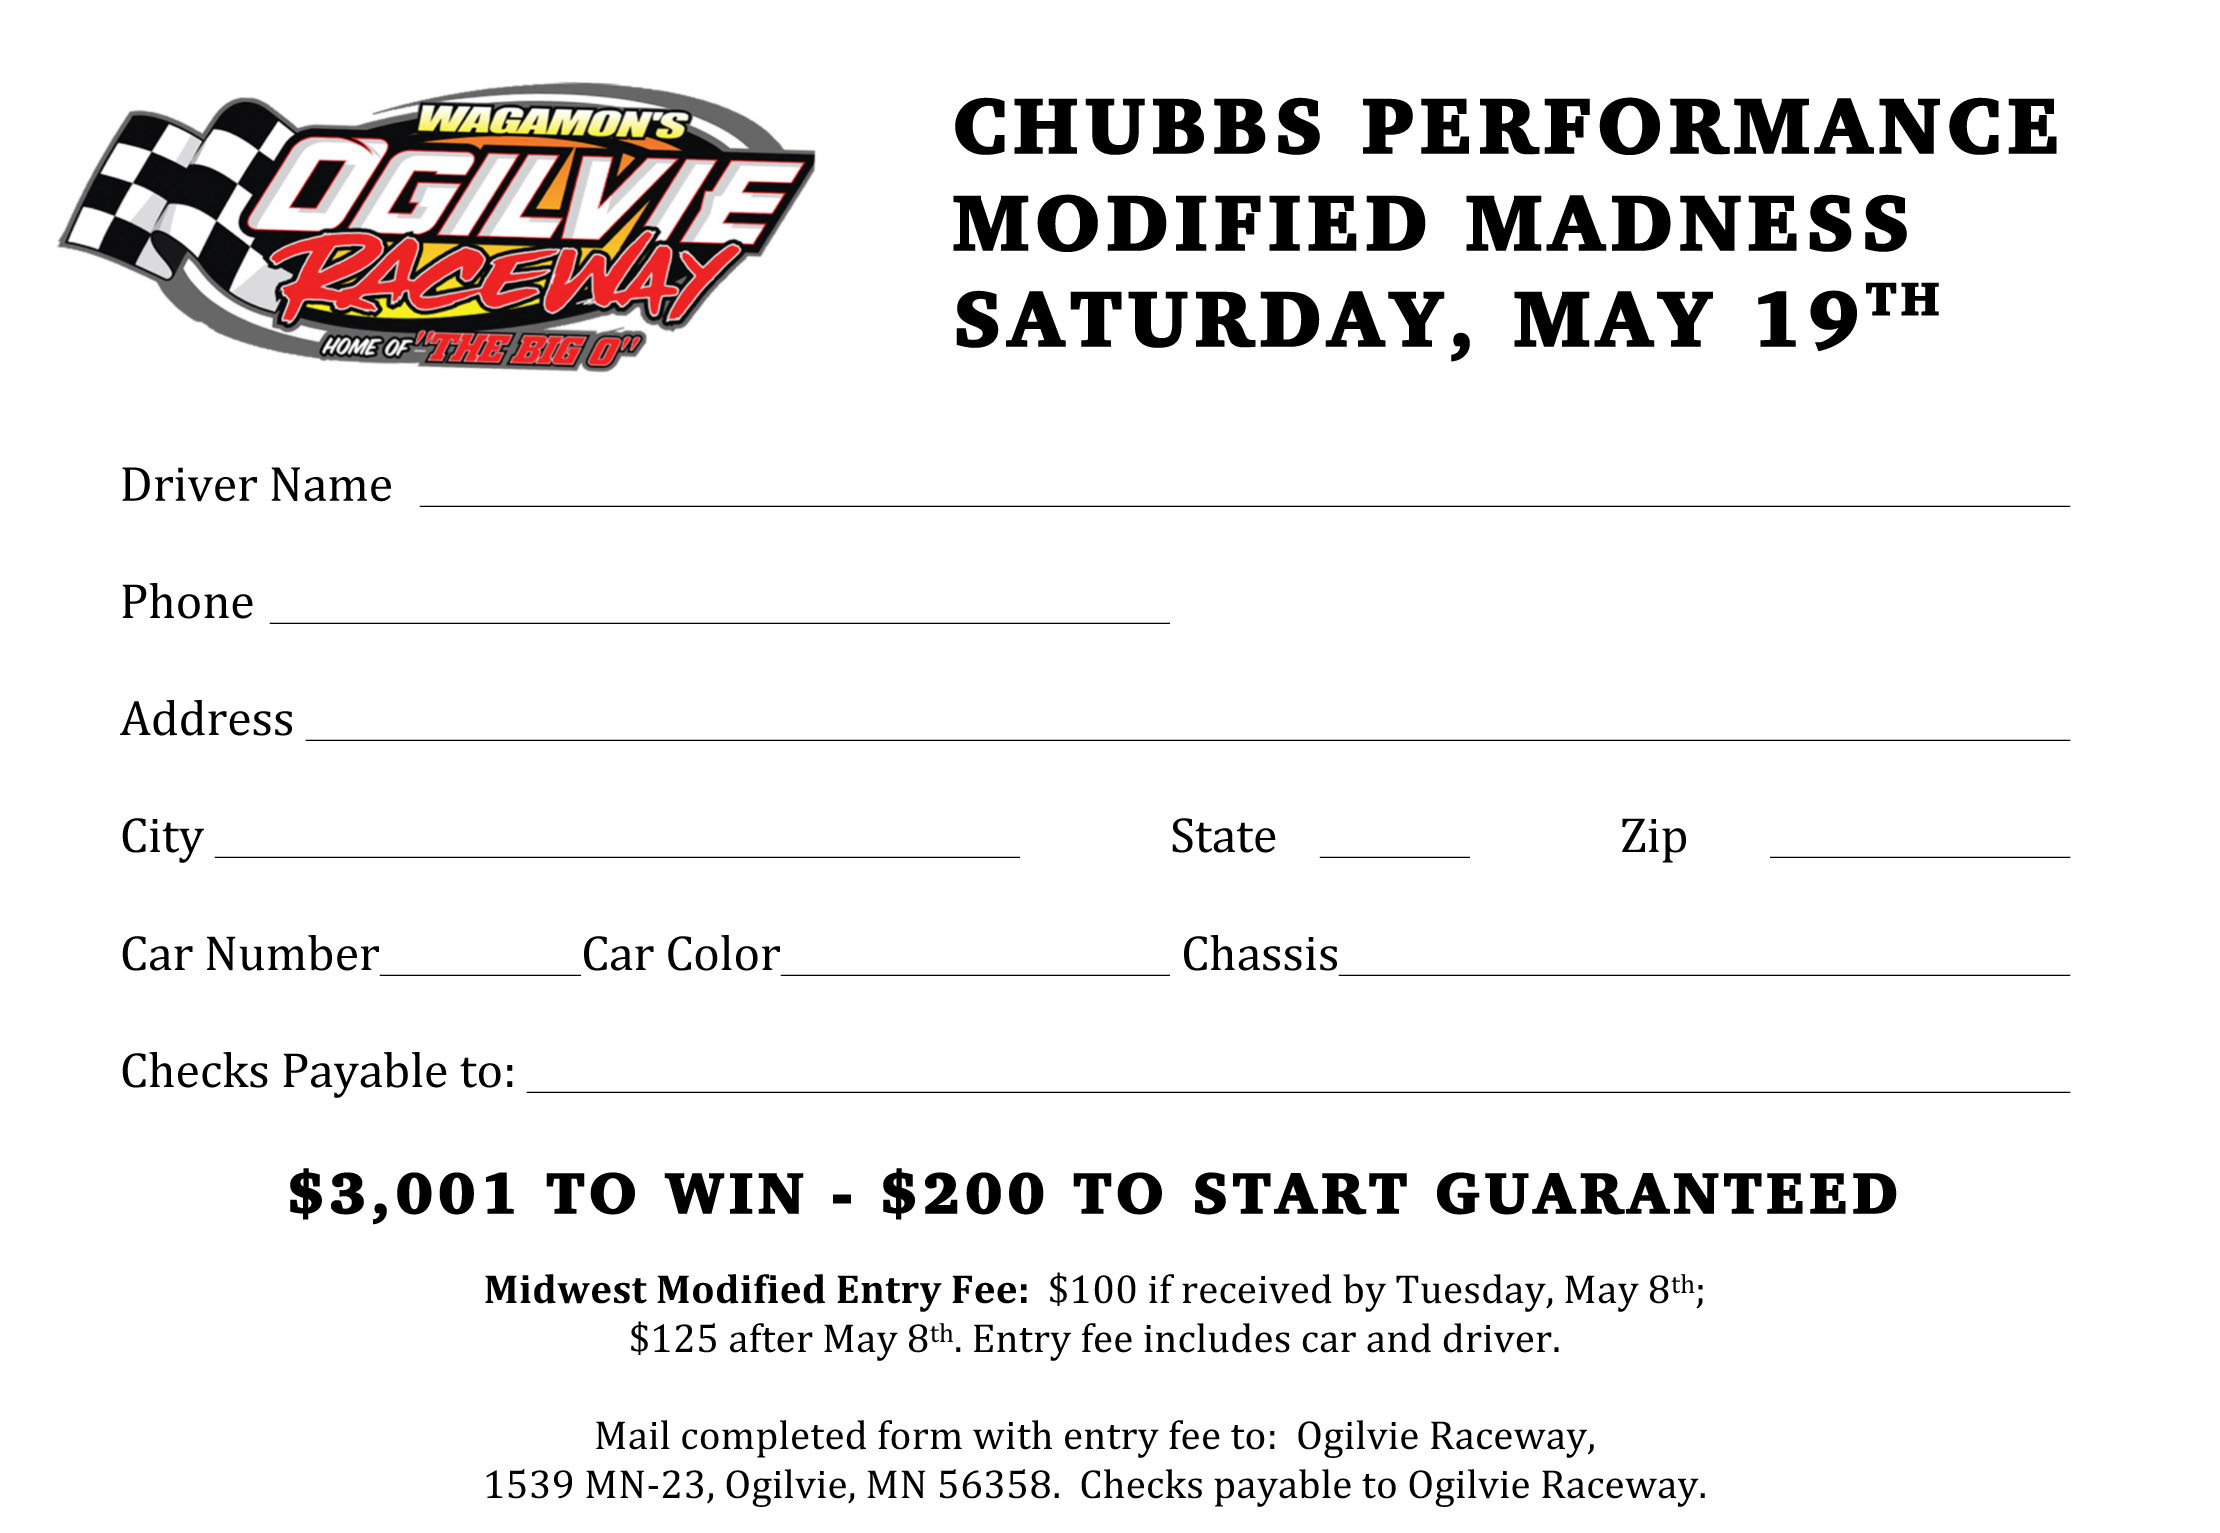 MWM Drivers – Register now for Chubbs Performance MODIFIED MADNESS $3K to WIN presented by the U.S. Army